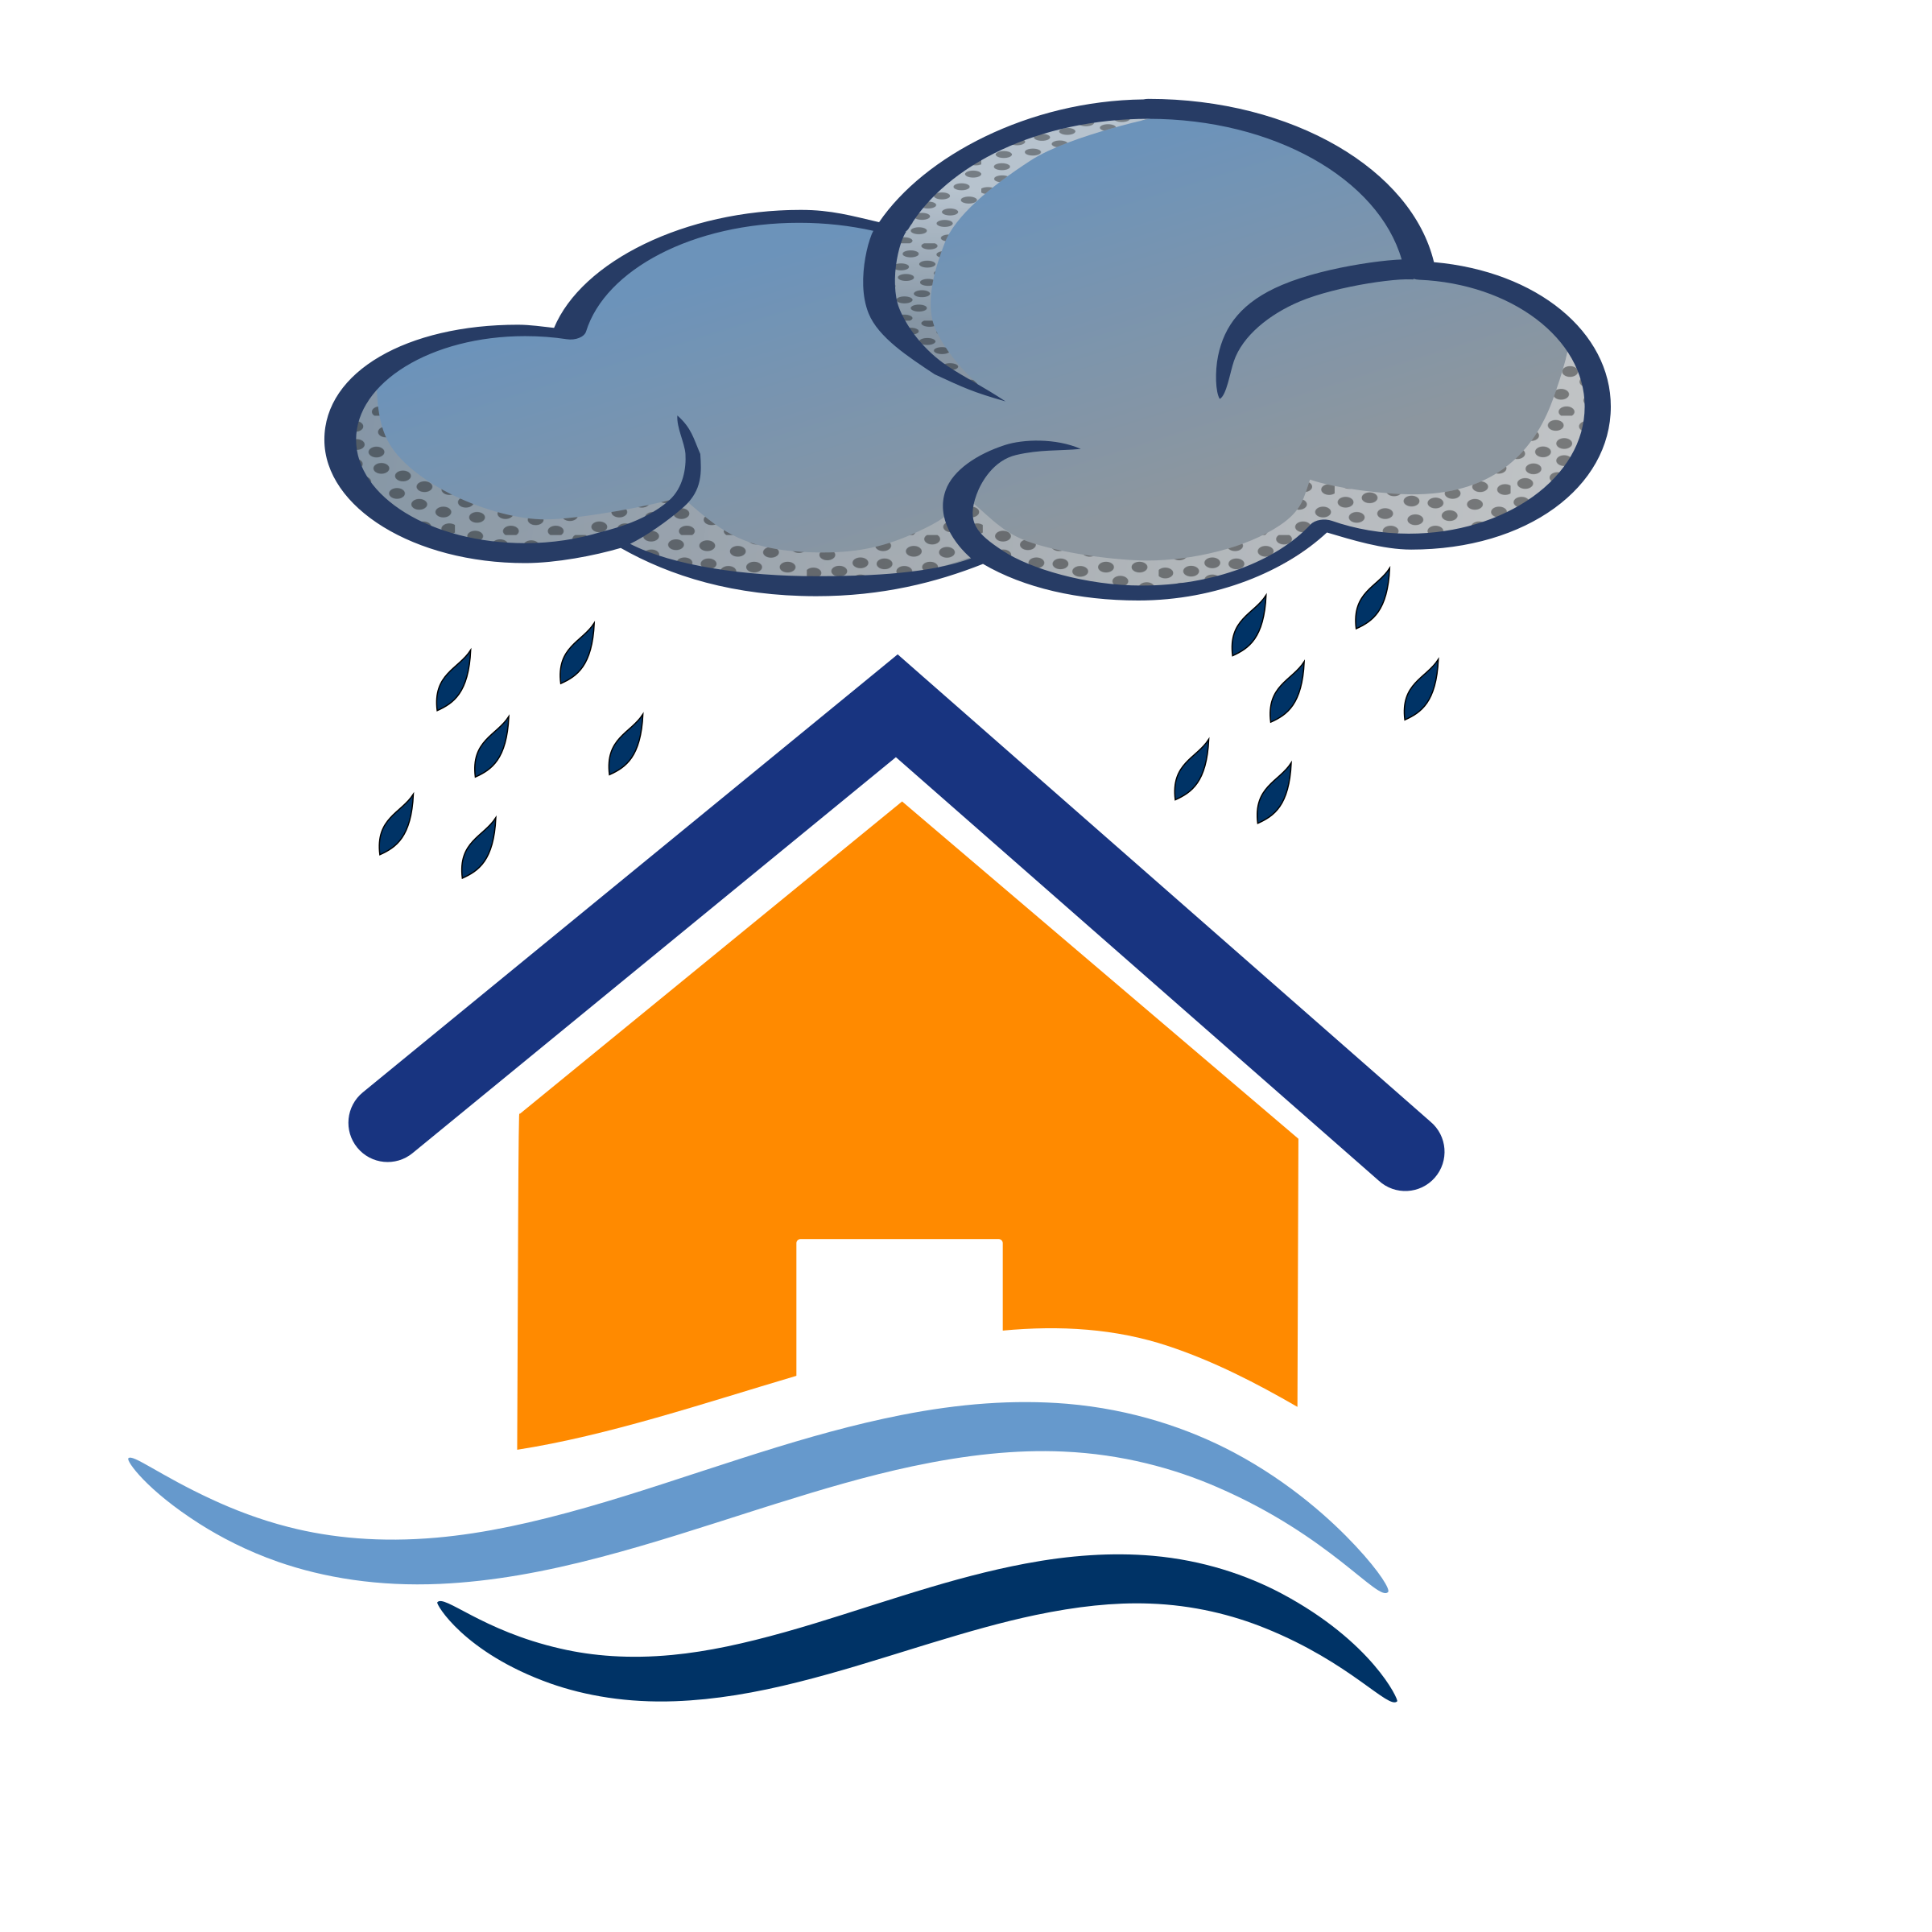 Flood clipart #8, Download drawings